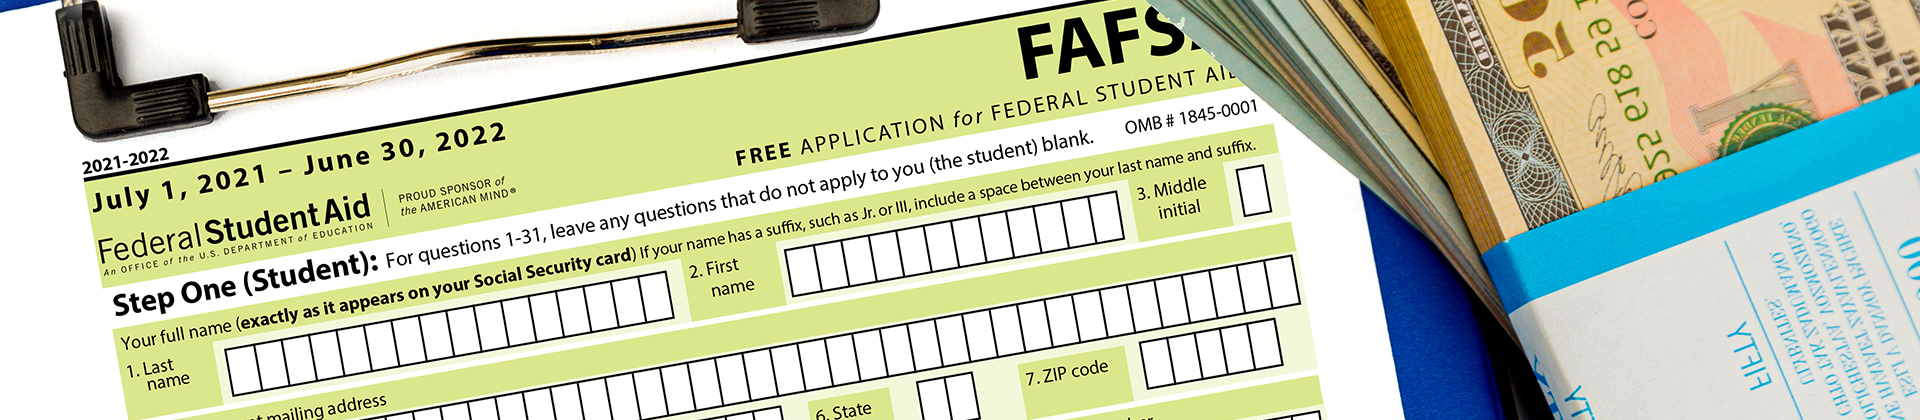 Virtual FAFSA Information Sessions